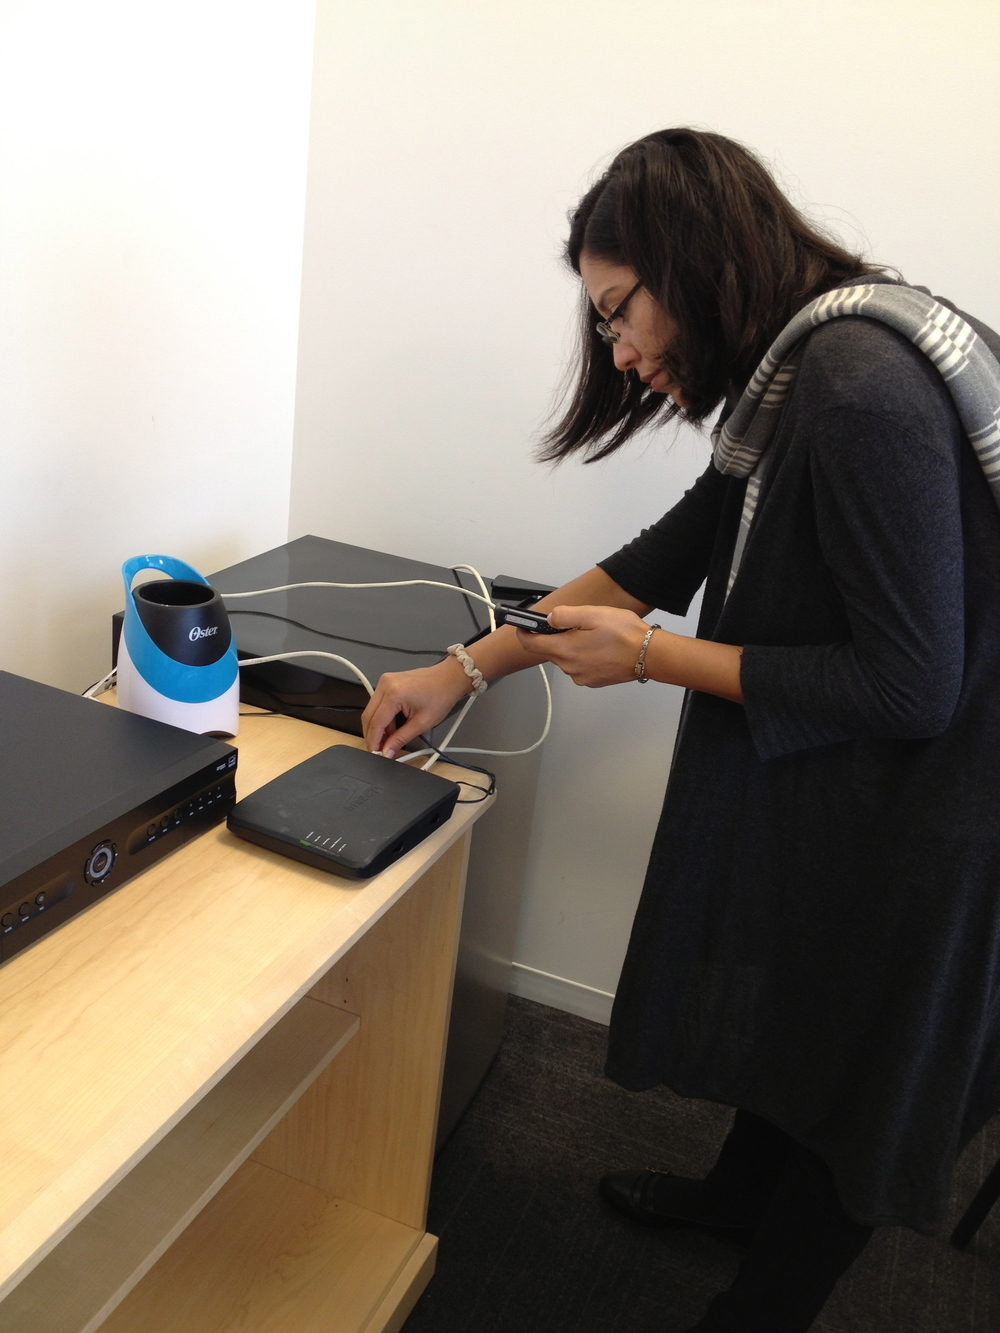 Testing the chat prototype, which empowers customers and enables easy communication between customers and care agents with the use of the camera and texting images.